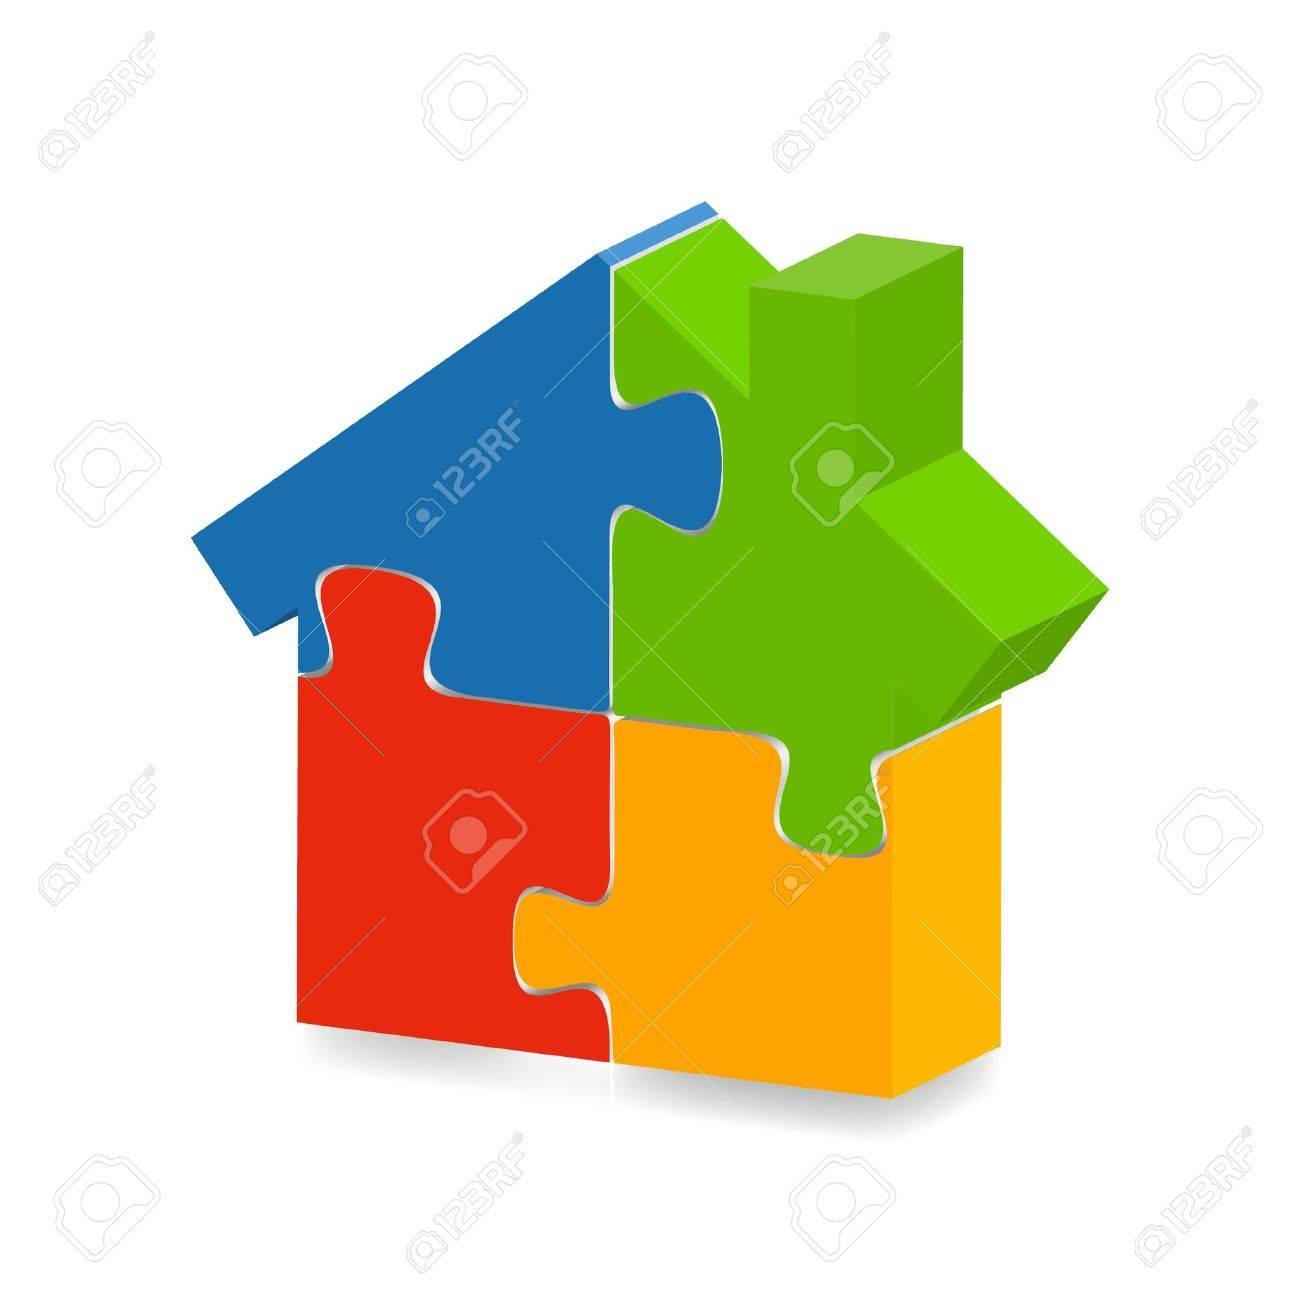 illustration of  a  house puzzle with a shadow underneath Stock Vector - 8544492